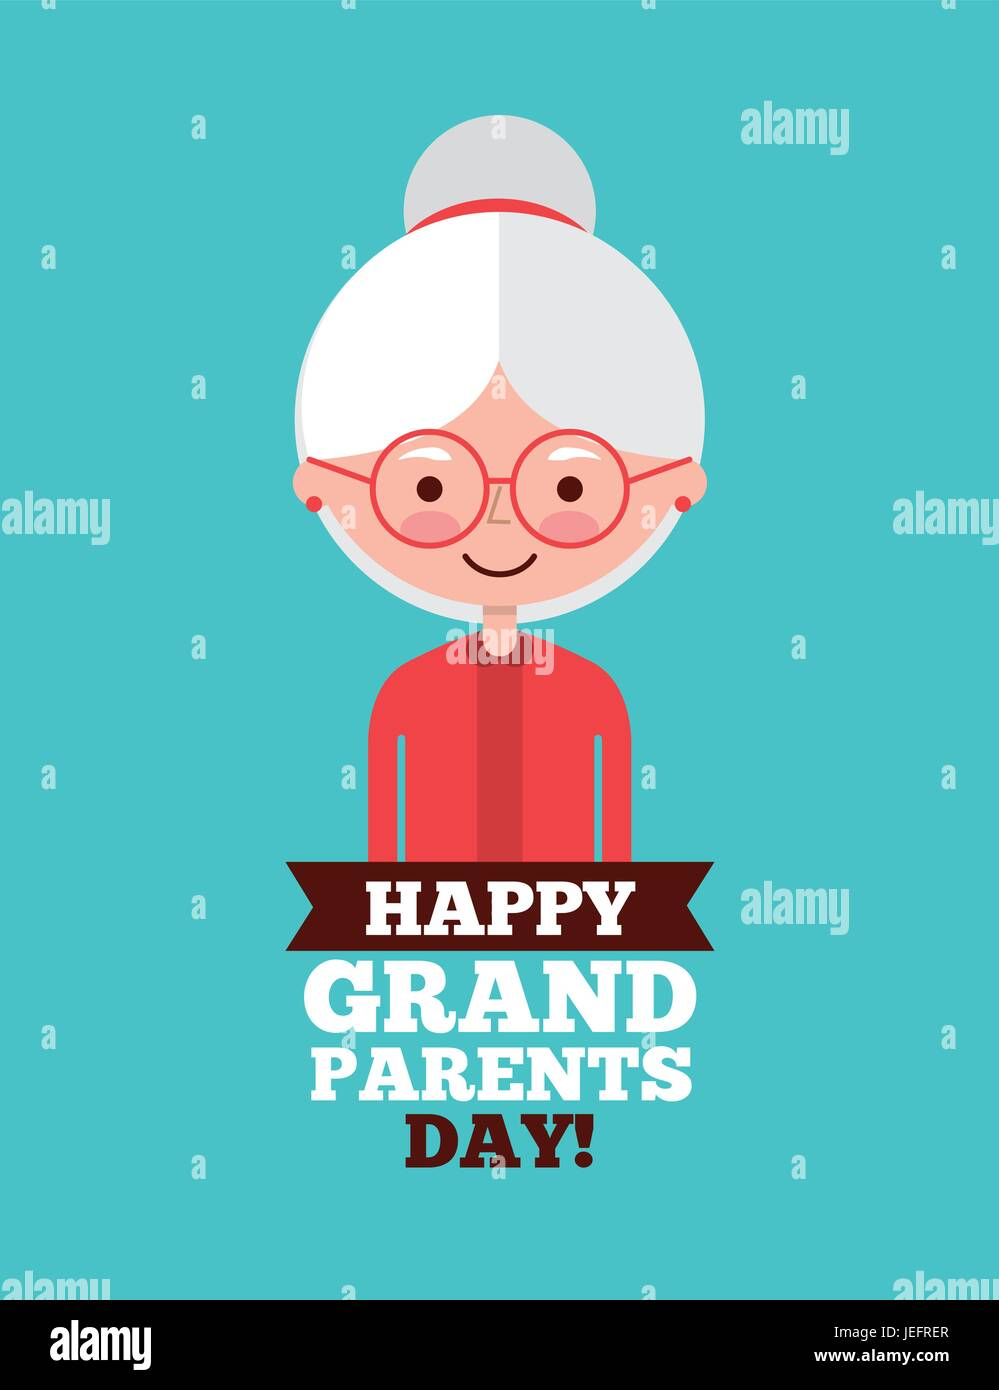 Grandparents day design - Stock Image